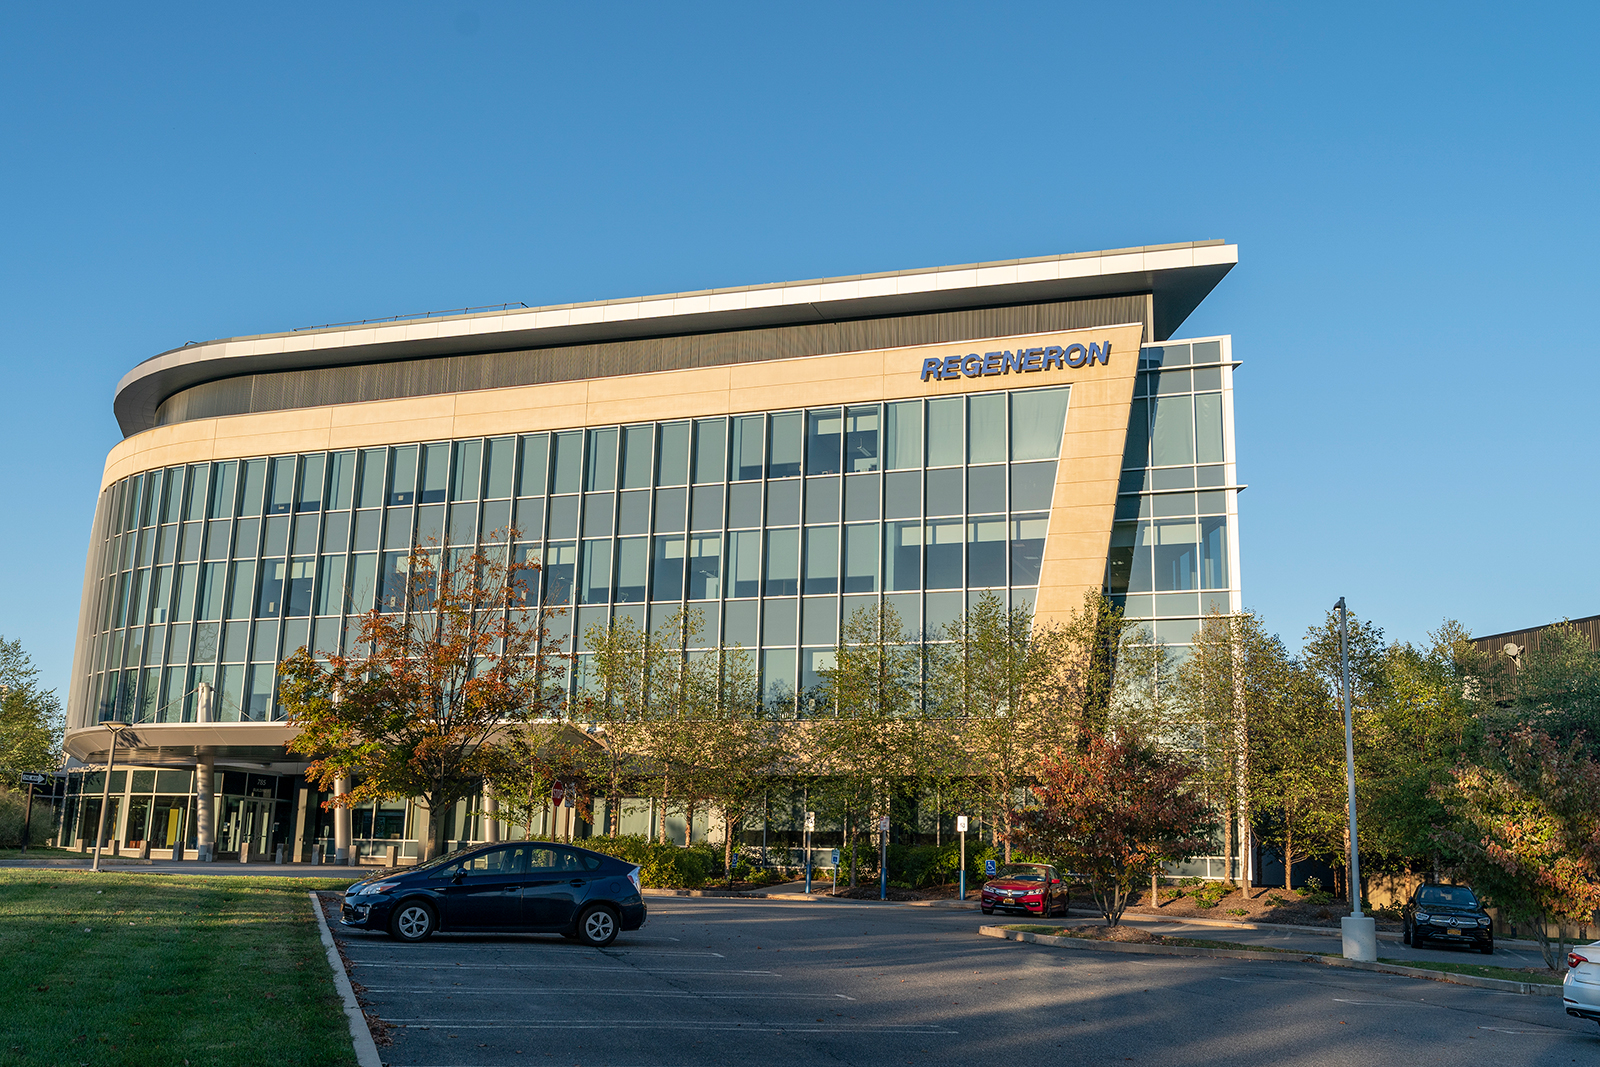 View of Corporate and Research & Development Headquarters of Regeneron Pharmaceuticals, Inc. on Old Saw Mill River Road in Tarrytown, New York, on October 2.